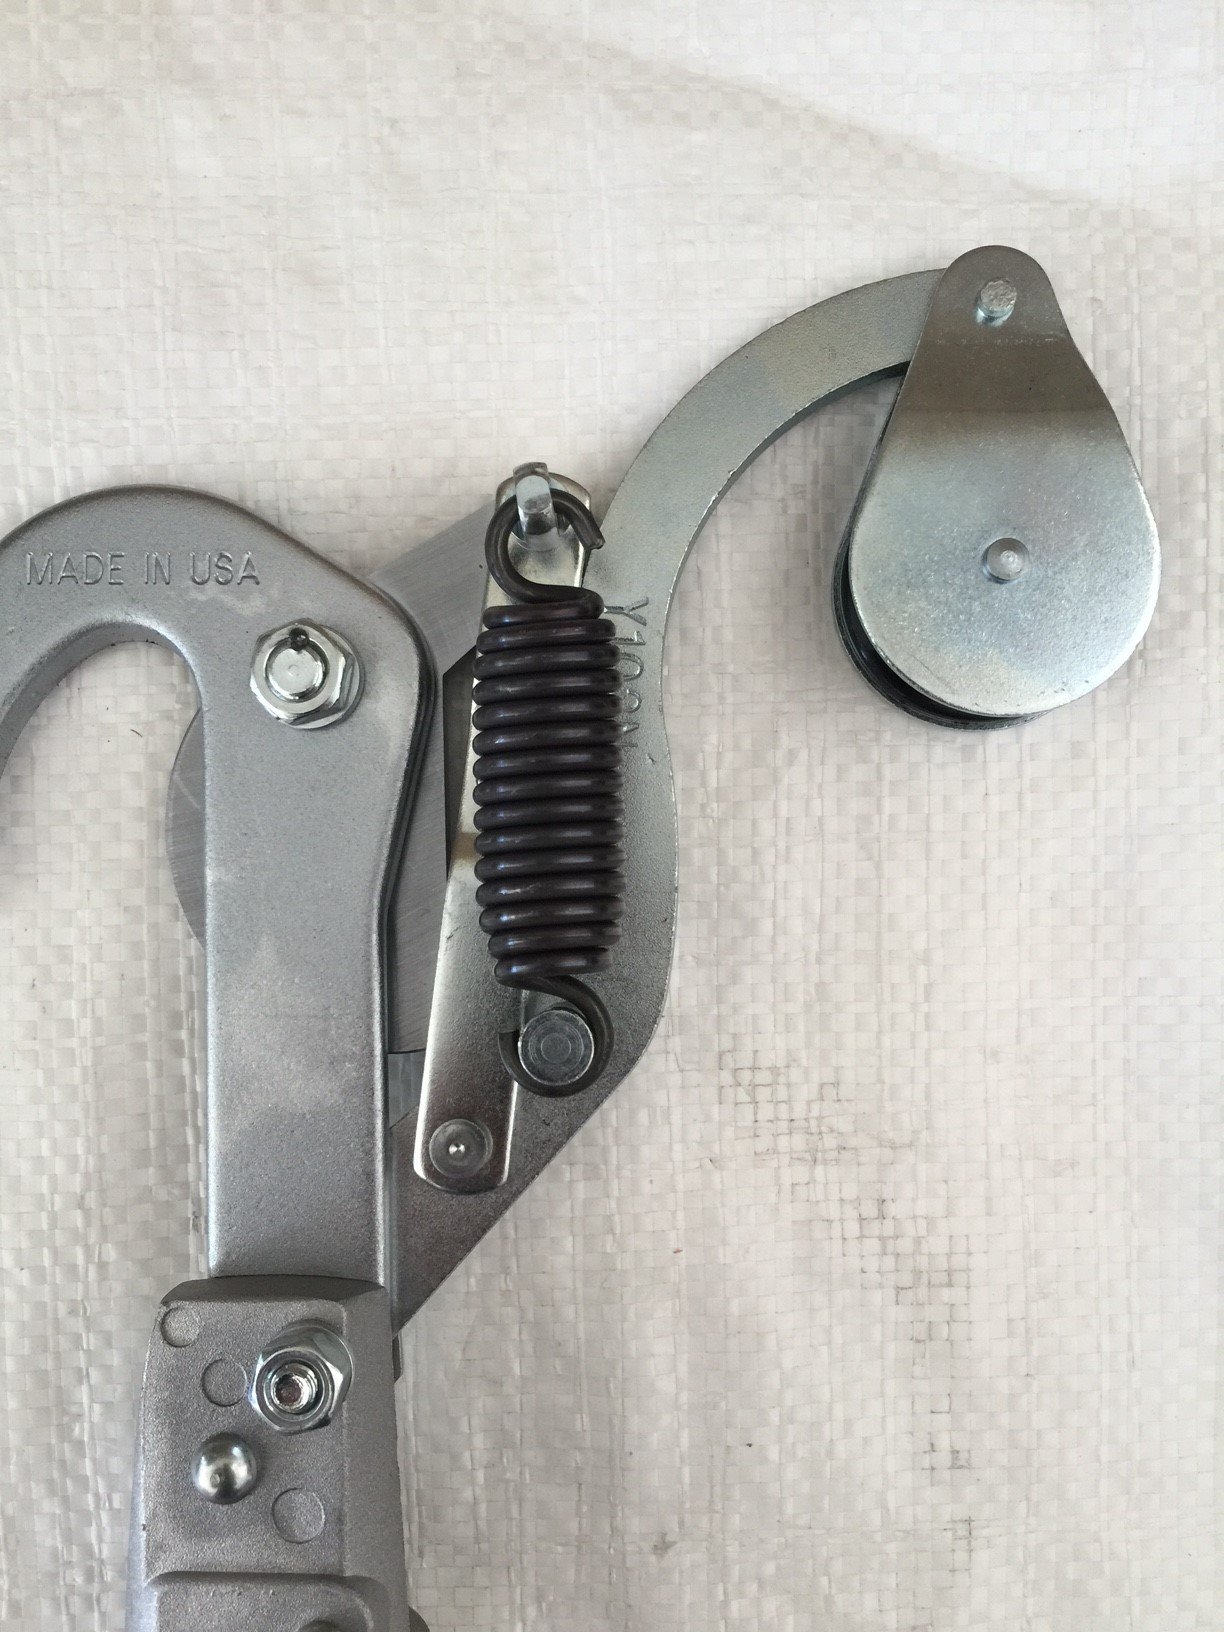 Phoenix Tools Marvin Pruning Head Pulley Assembly Genuine Part 40115 Made In U S A